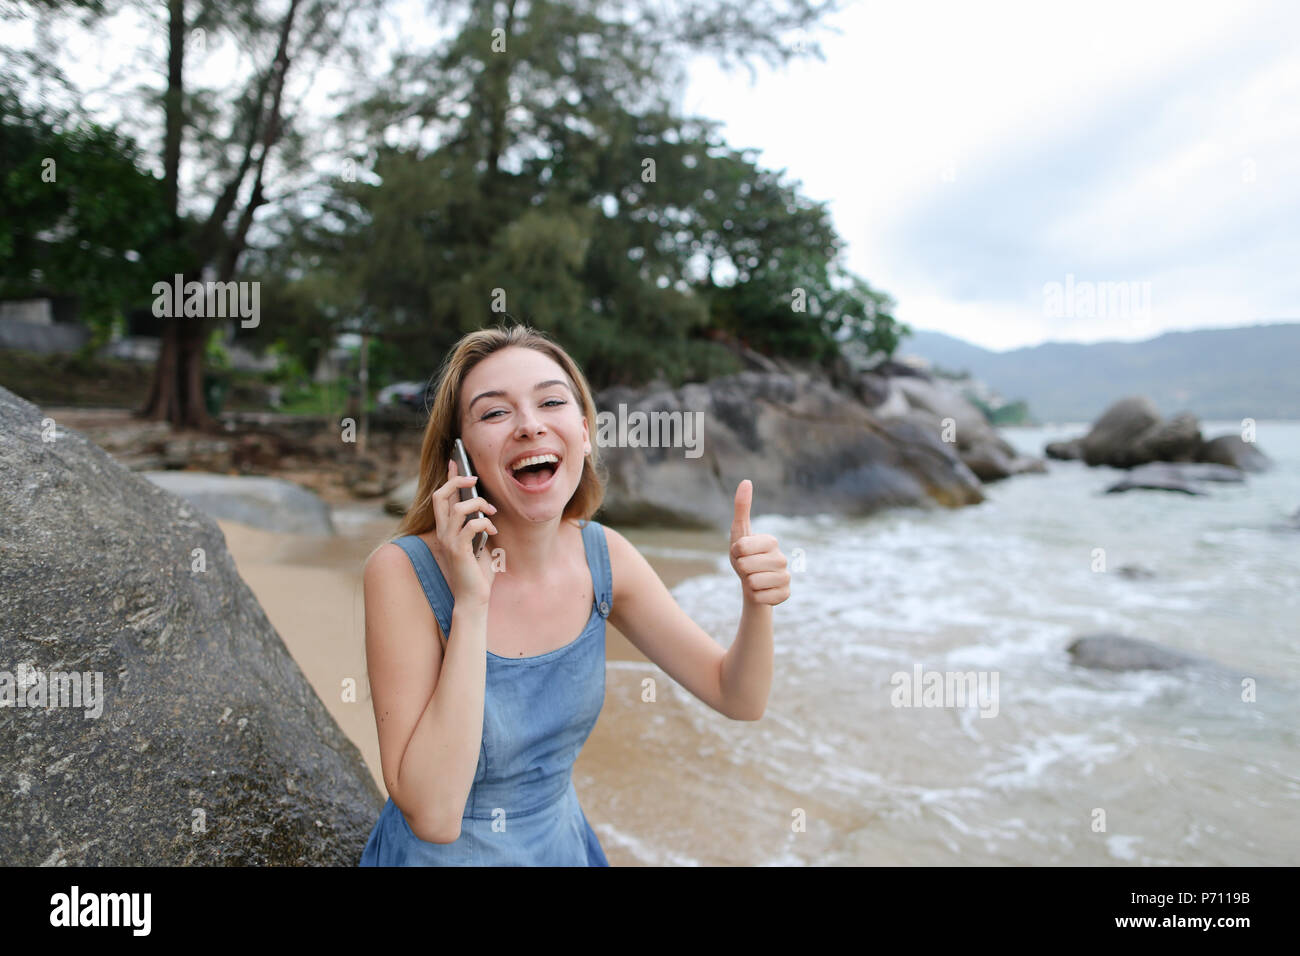 Young blonde woman sitting on sand near sea and stones, talking by smartphone and showing thumbs up. - Stock Image